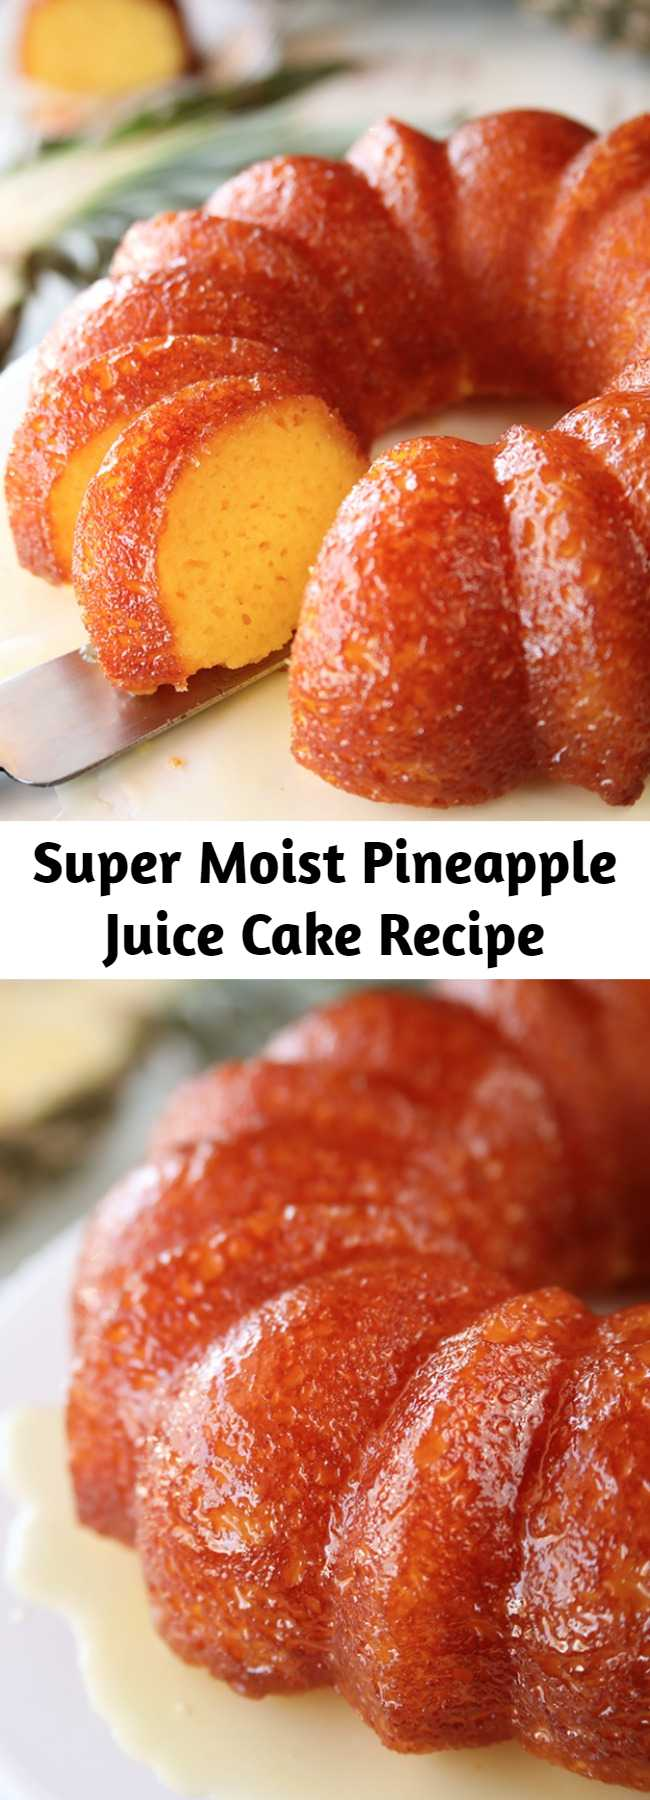 Super Moist Pineapple Juice Cake Recipe - The super moist cake is infused with pineapple flavor in the batter and the butter-pineapple glaze that it gets soaked in amps that pineapple flavor up even more!